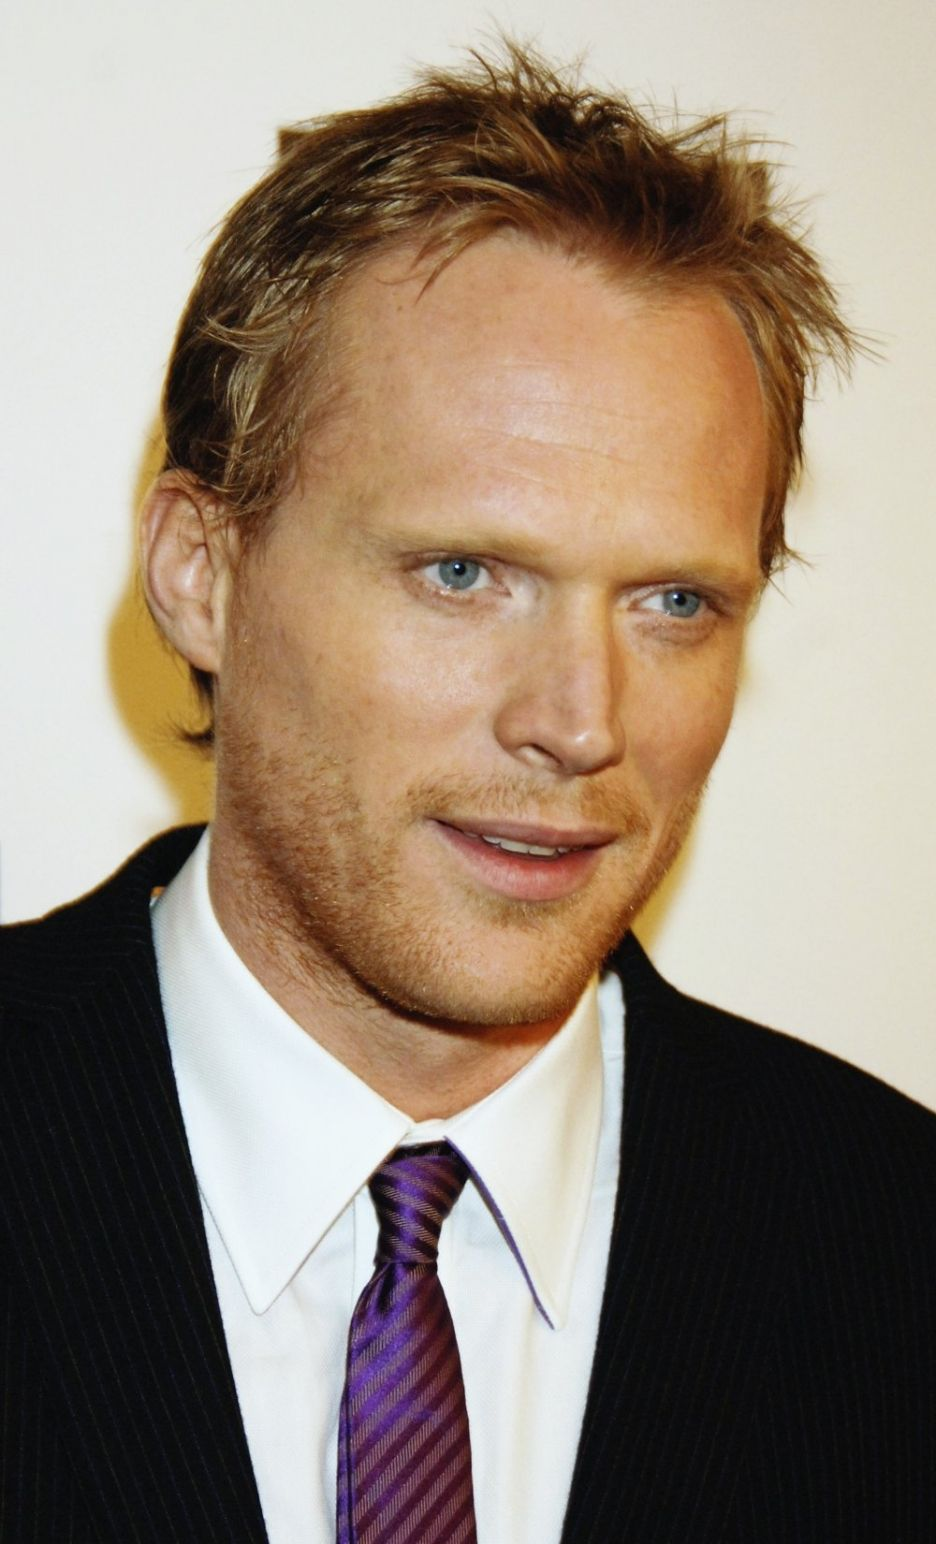 Paul Bettany (born 1971) nudes (95 photos), Pussy, Fappening, Instagram, braless 2018